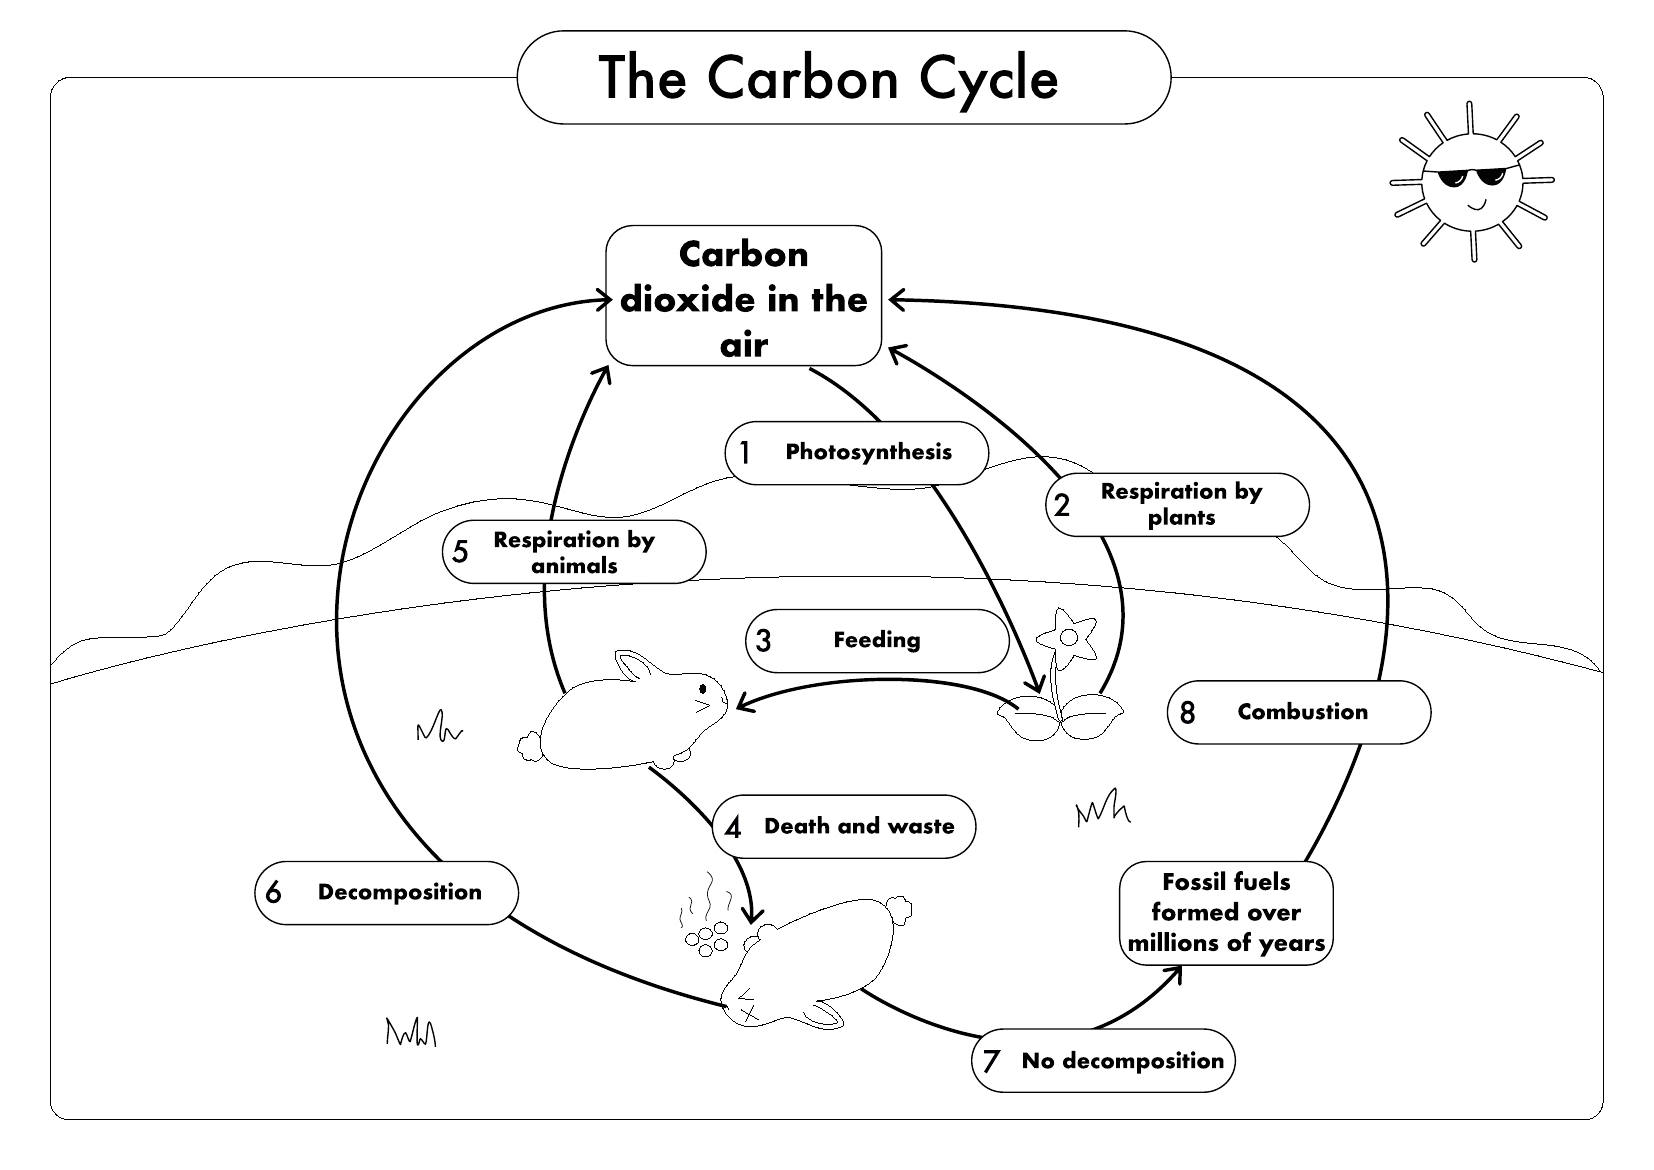 GCSE Biology Carbon Cycle worksheets and A3 wall posters